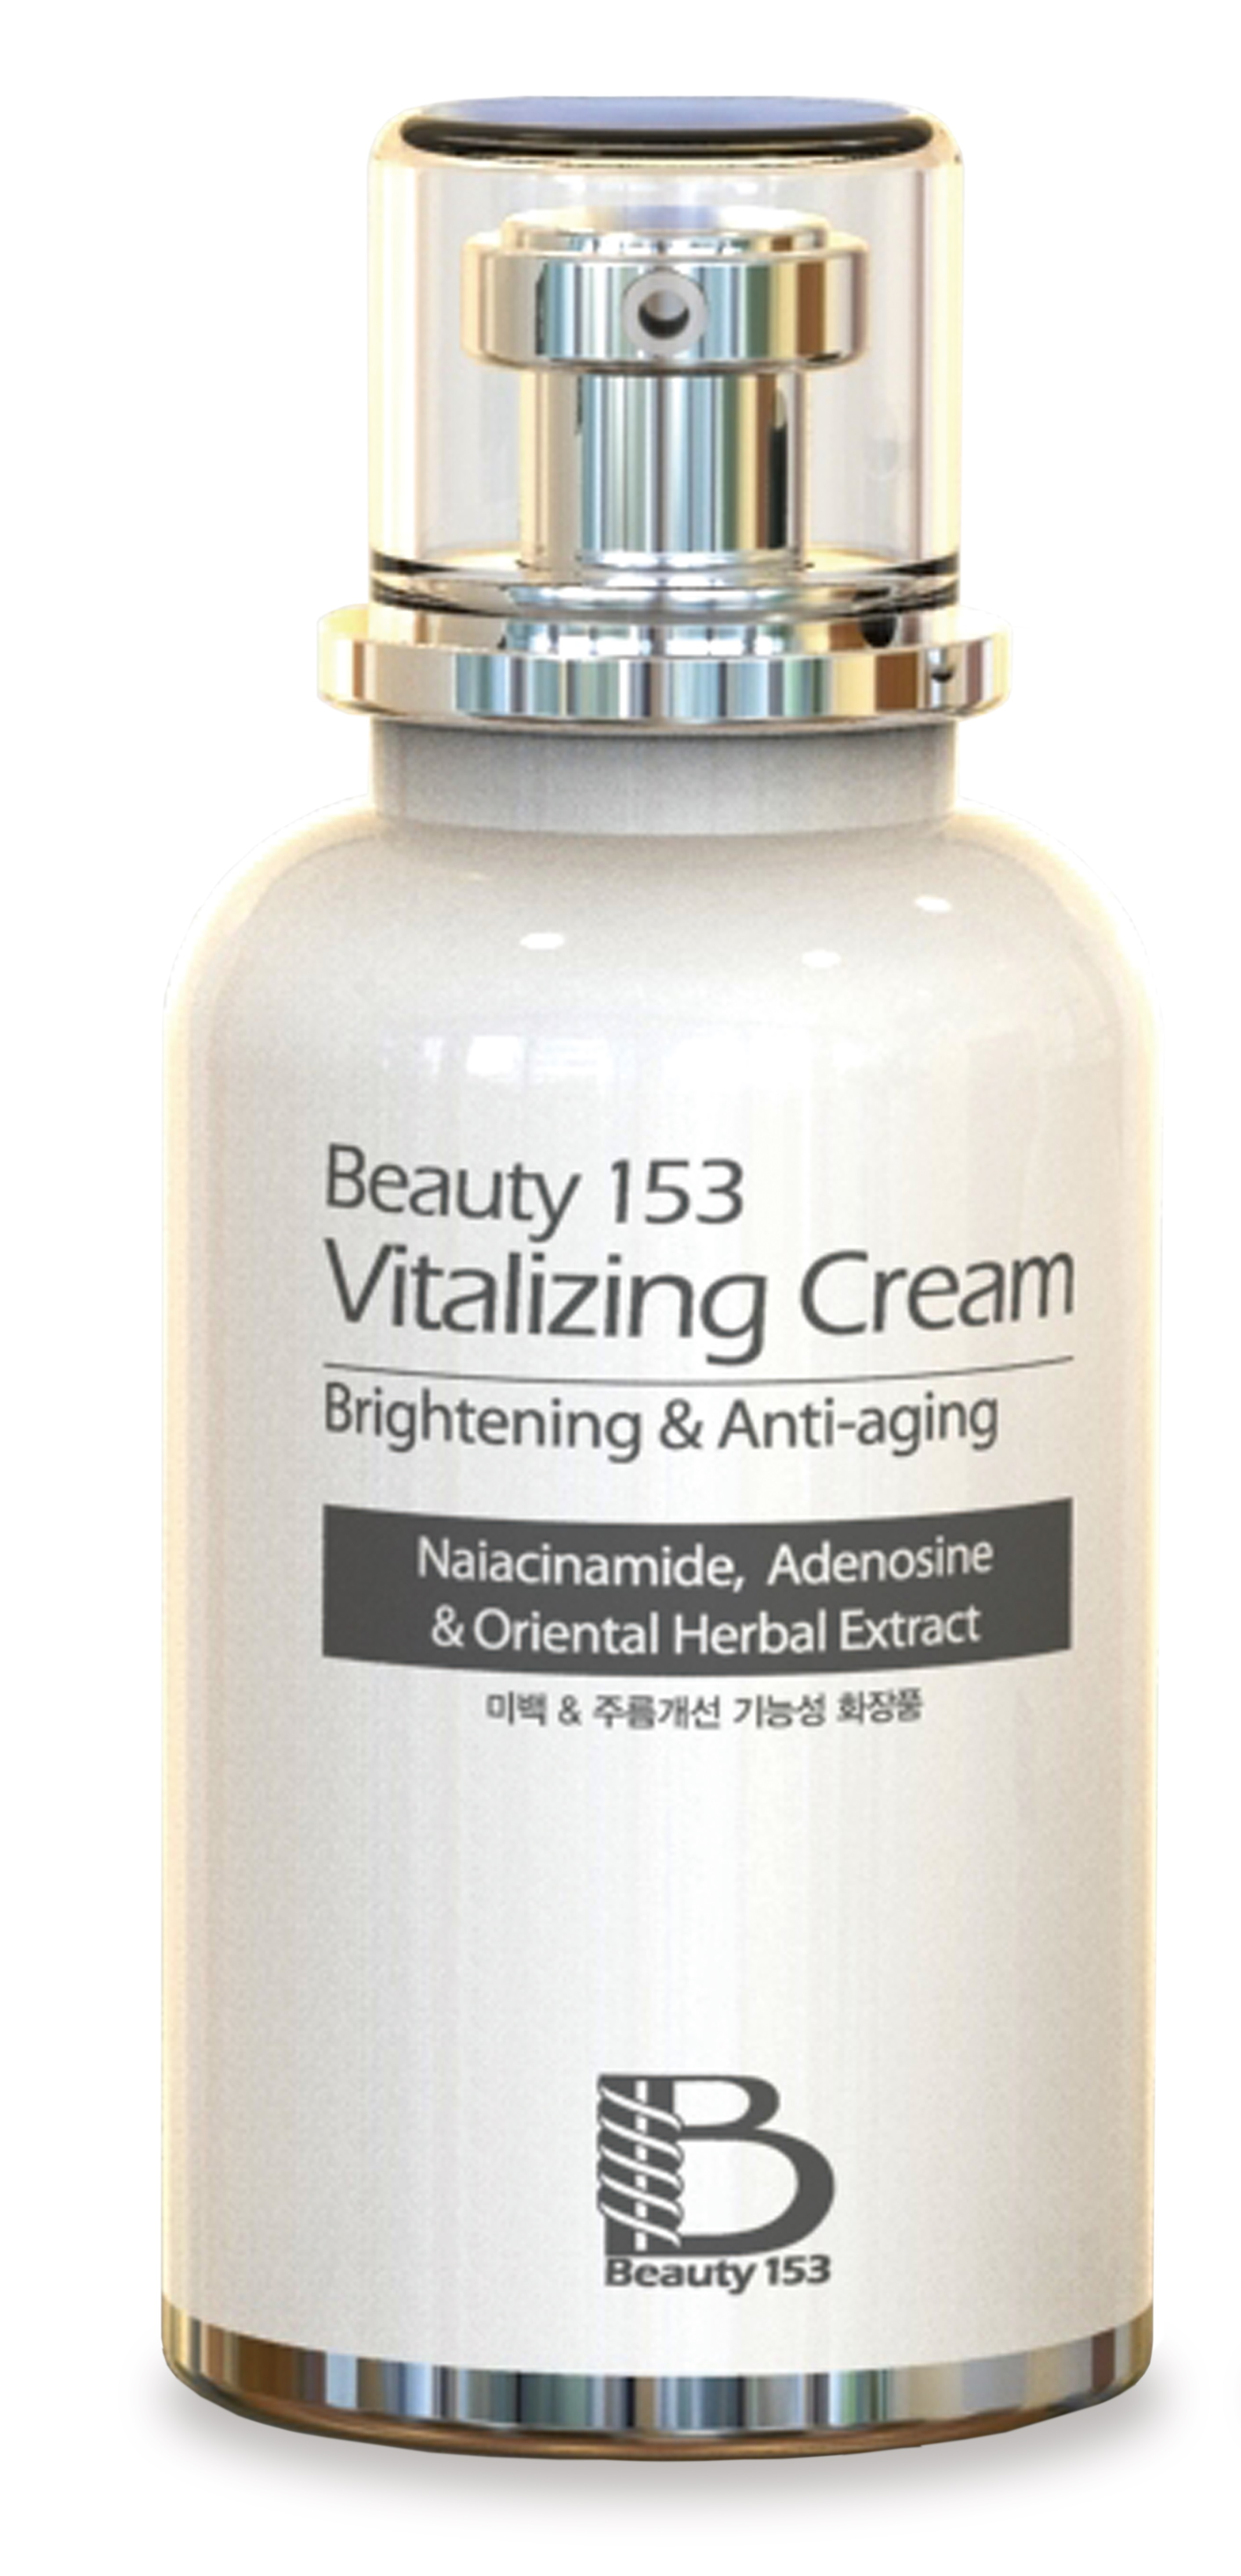 Beauty153 Vitalizing Cream